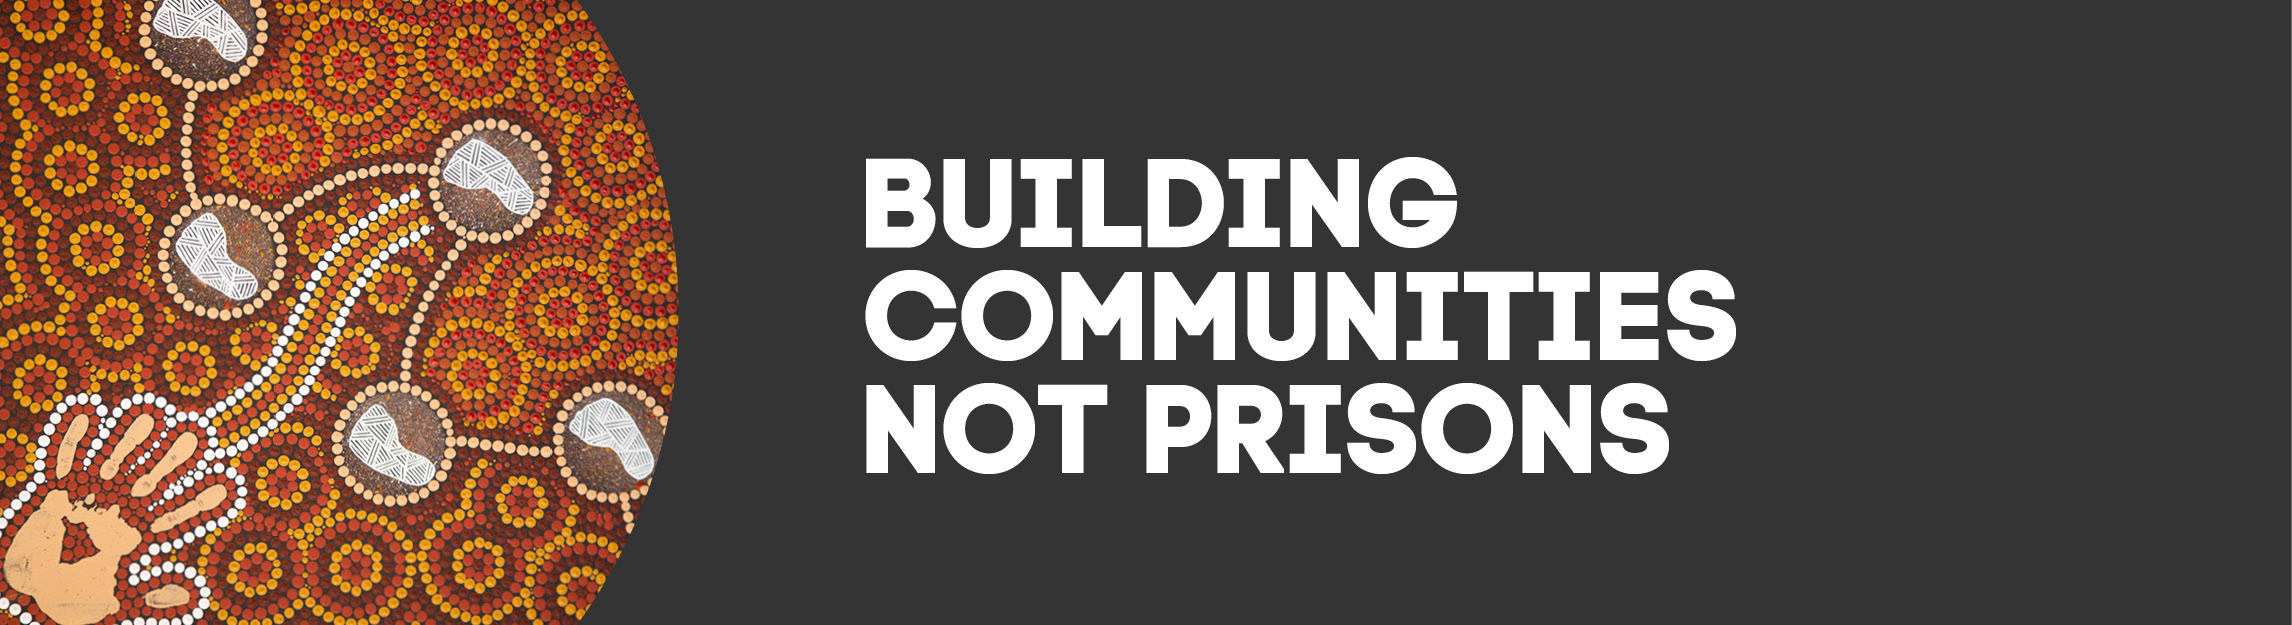 building communities not prisons